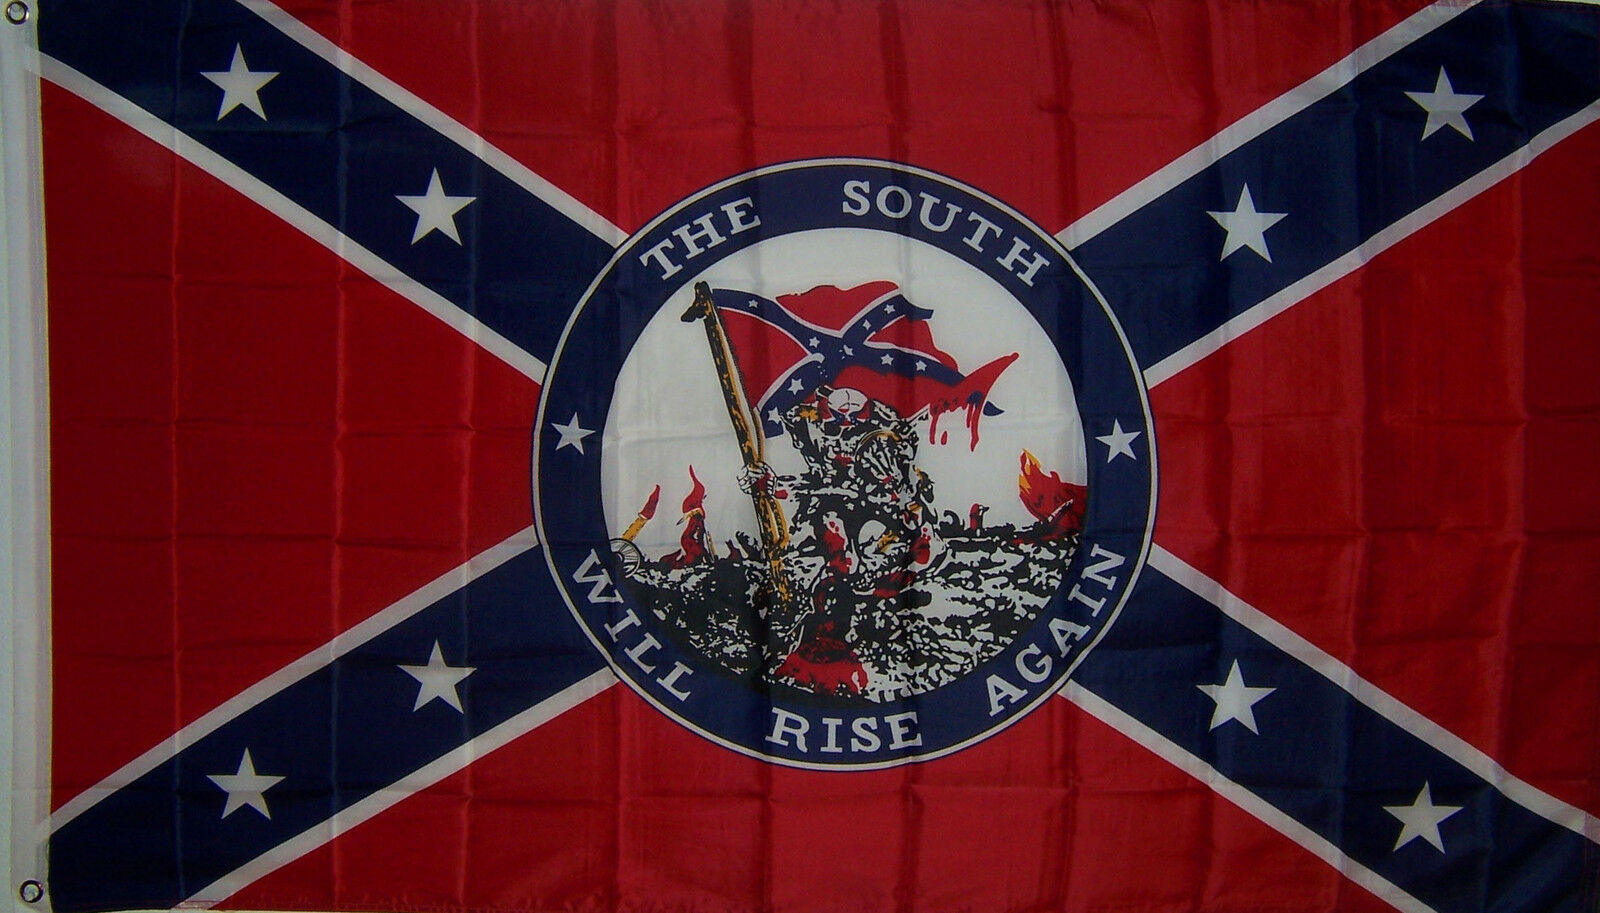 South Will Rise Again Confederate Flag Discontinued Wallpaper: Naval Combat Tall Ships #YWVRWTT8V. I need to locate a wallpaper border that has been ...